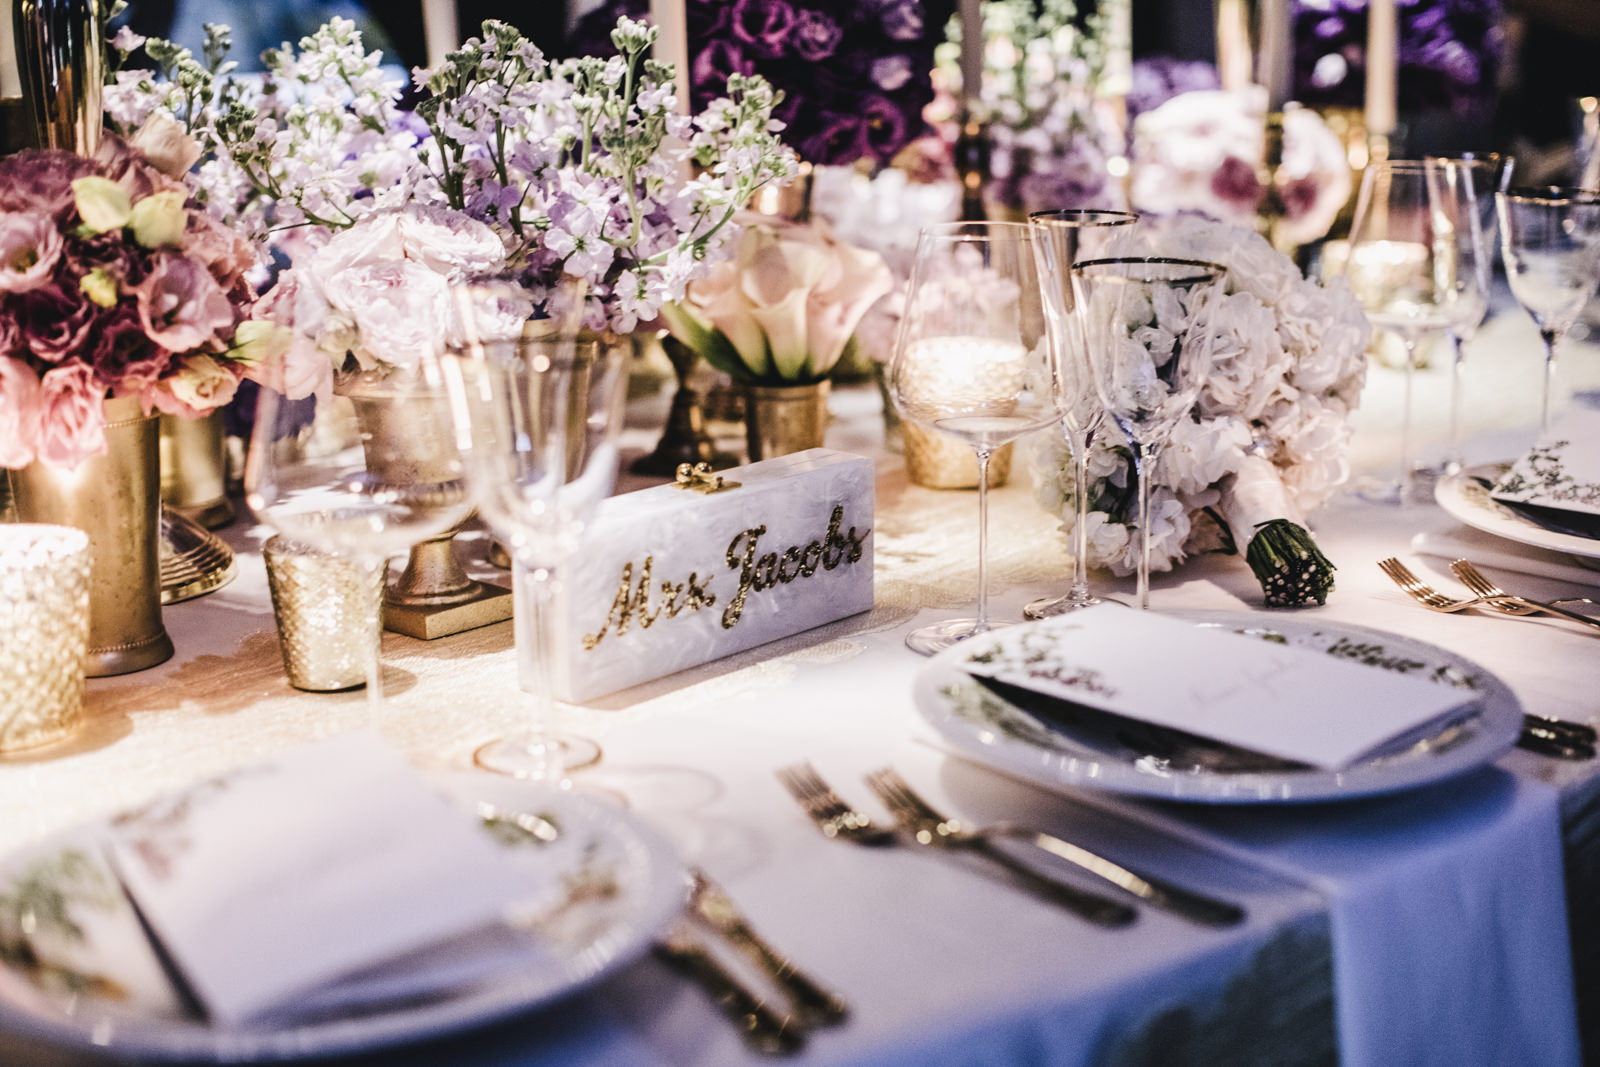 bride's customize hand bag on the wedding table